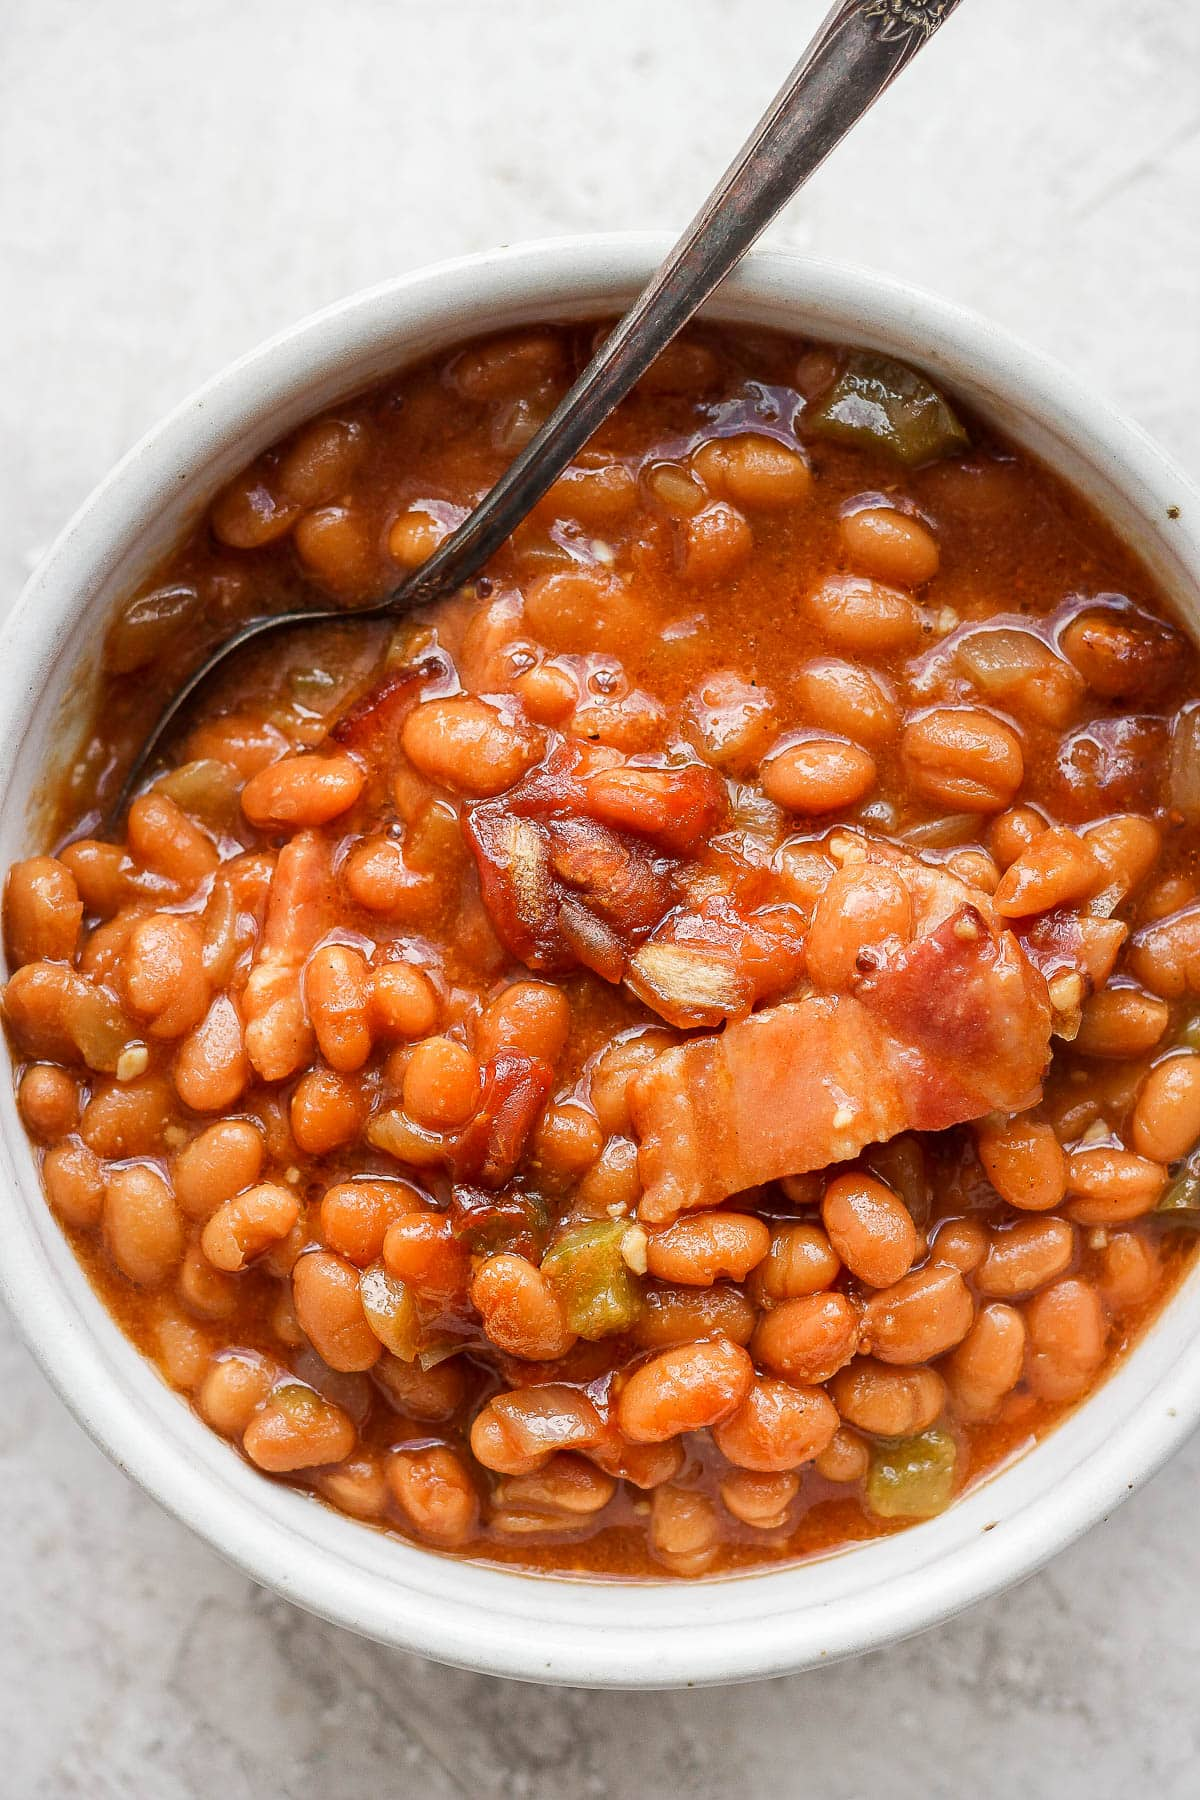 Bowl of smoked baked beans with a spoon sticking out.